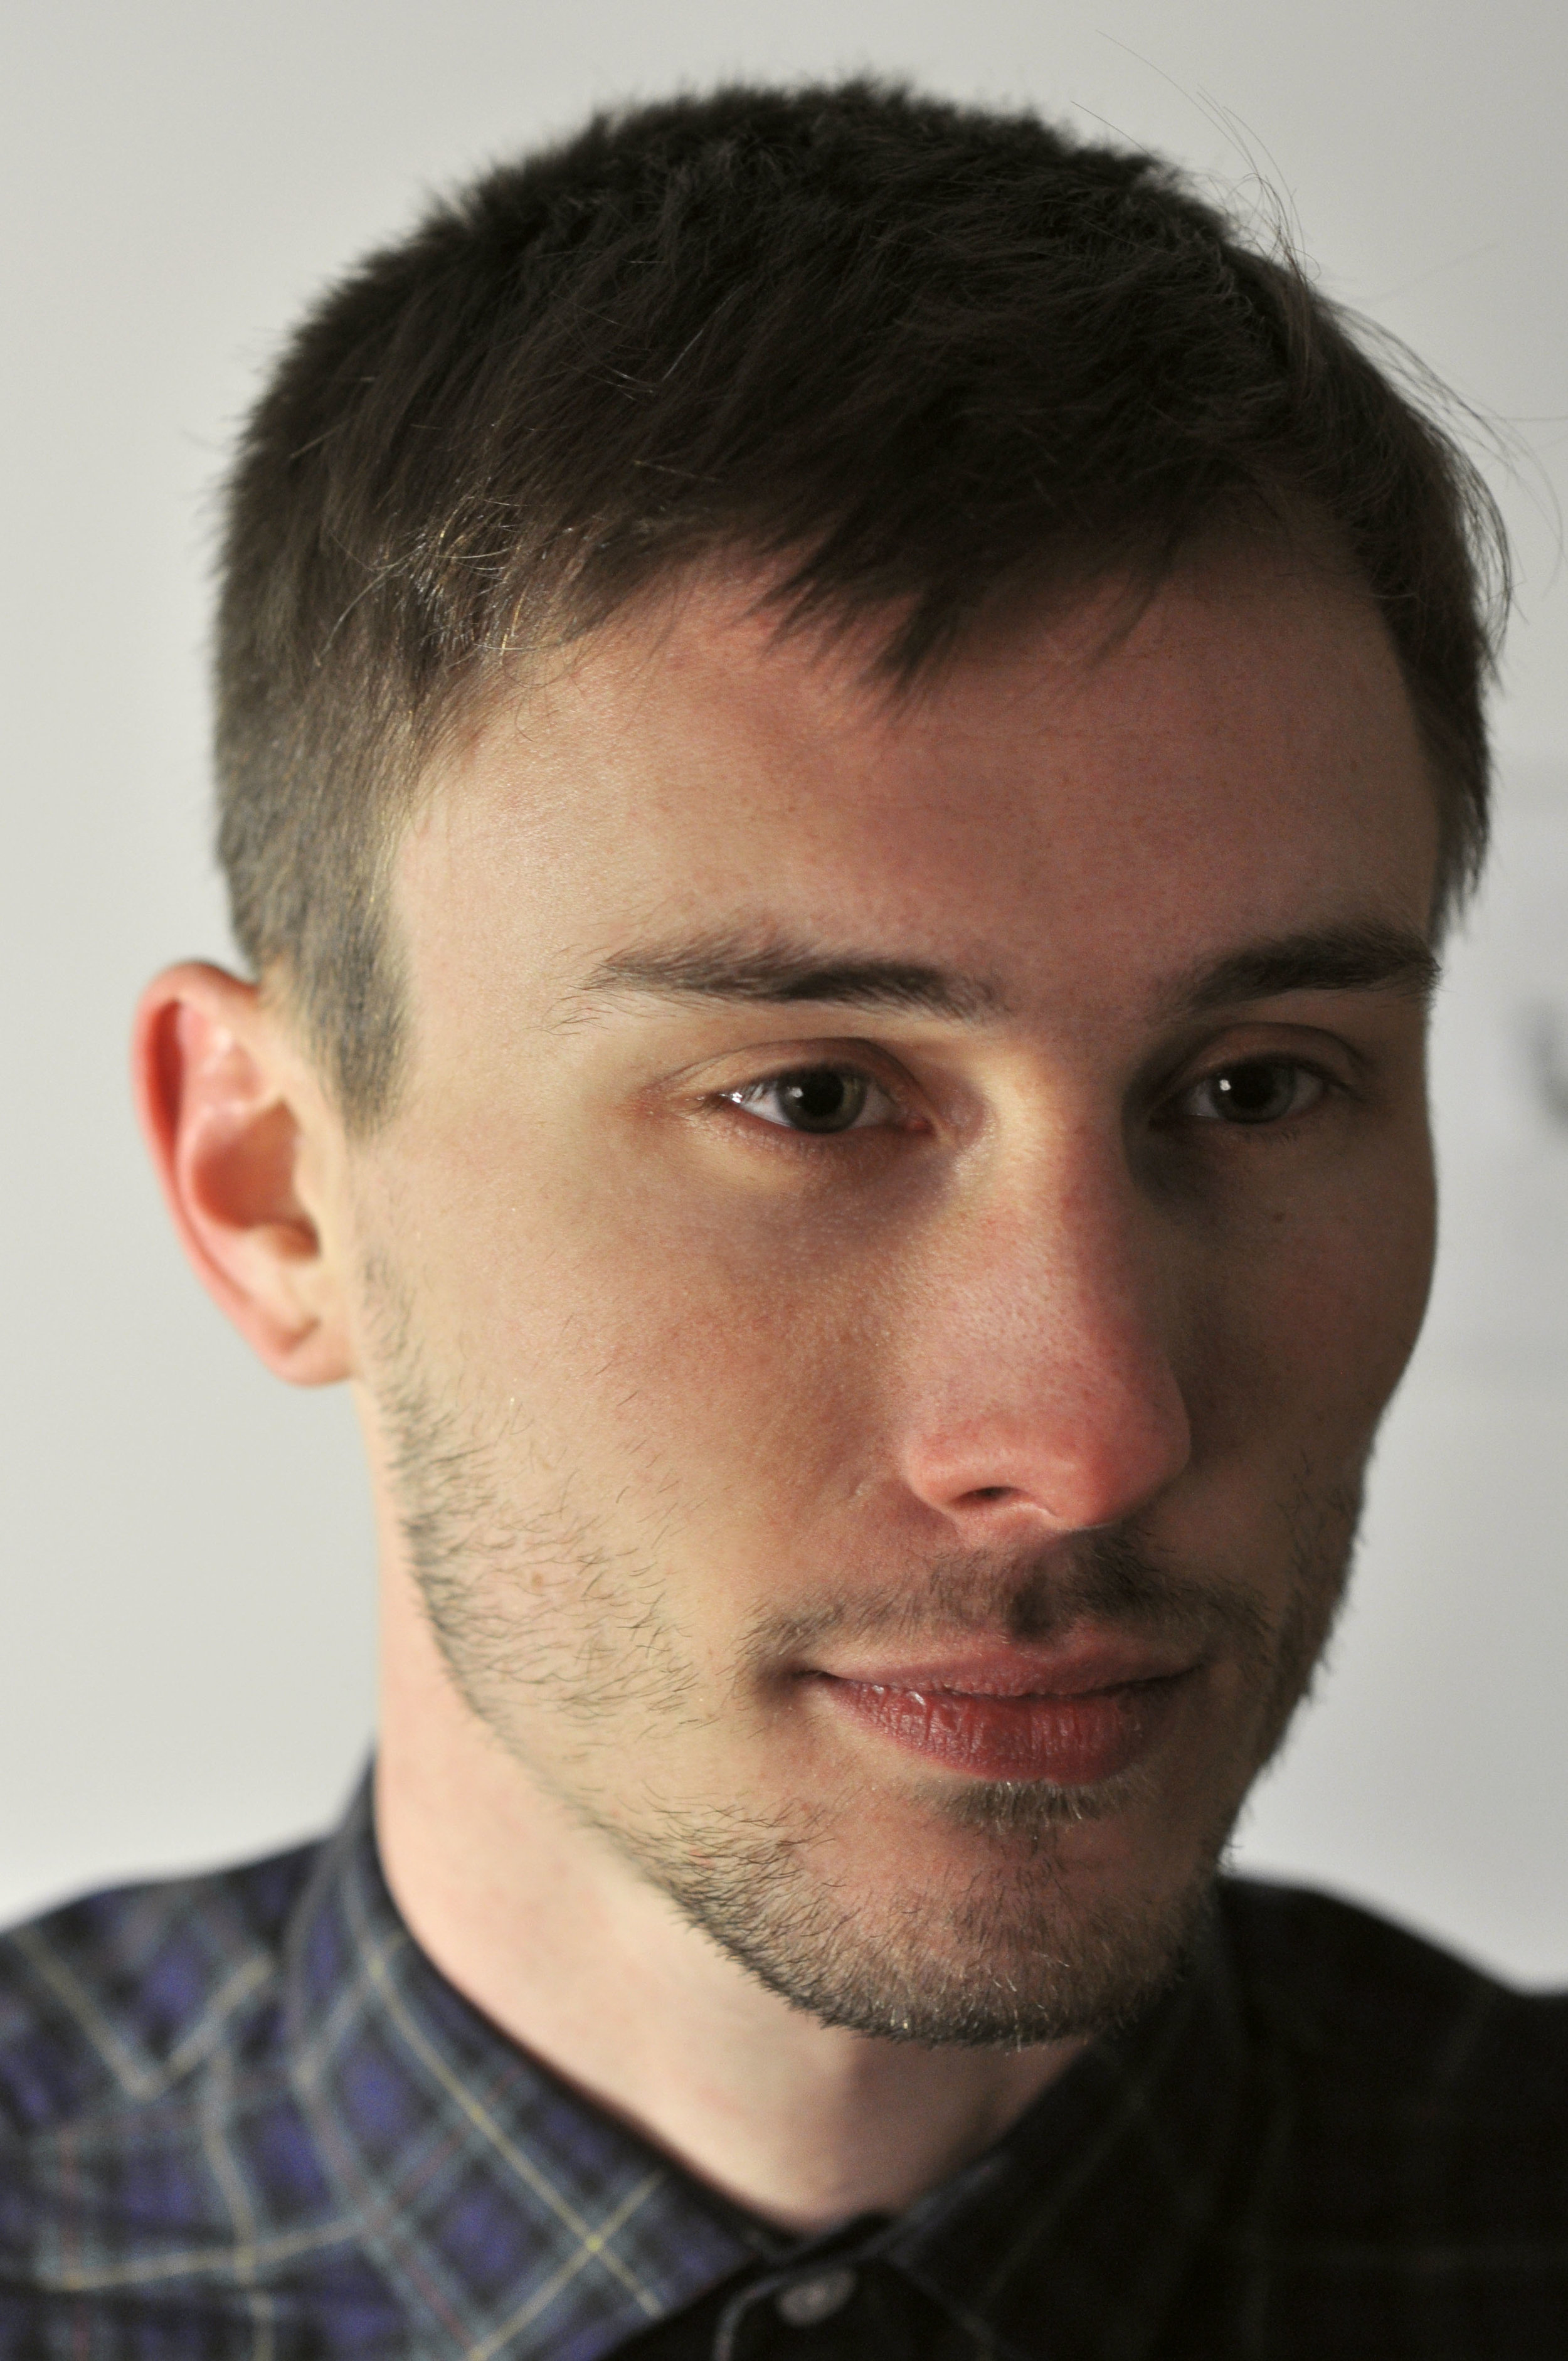 writer + director - Matthew Charof is an award winning filmmaker from Boston, Ma. who graduated from SUNY Purchase in 2010. He is known for Pale (2015) which won best short film at the London Film Awards, Firefly which received a Best Actress nod at the Hamilton Film Festival (2016) and The Times (2017) which was an IFP Screen forward Lab recipient and an IFP No Borders feature screenplay.